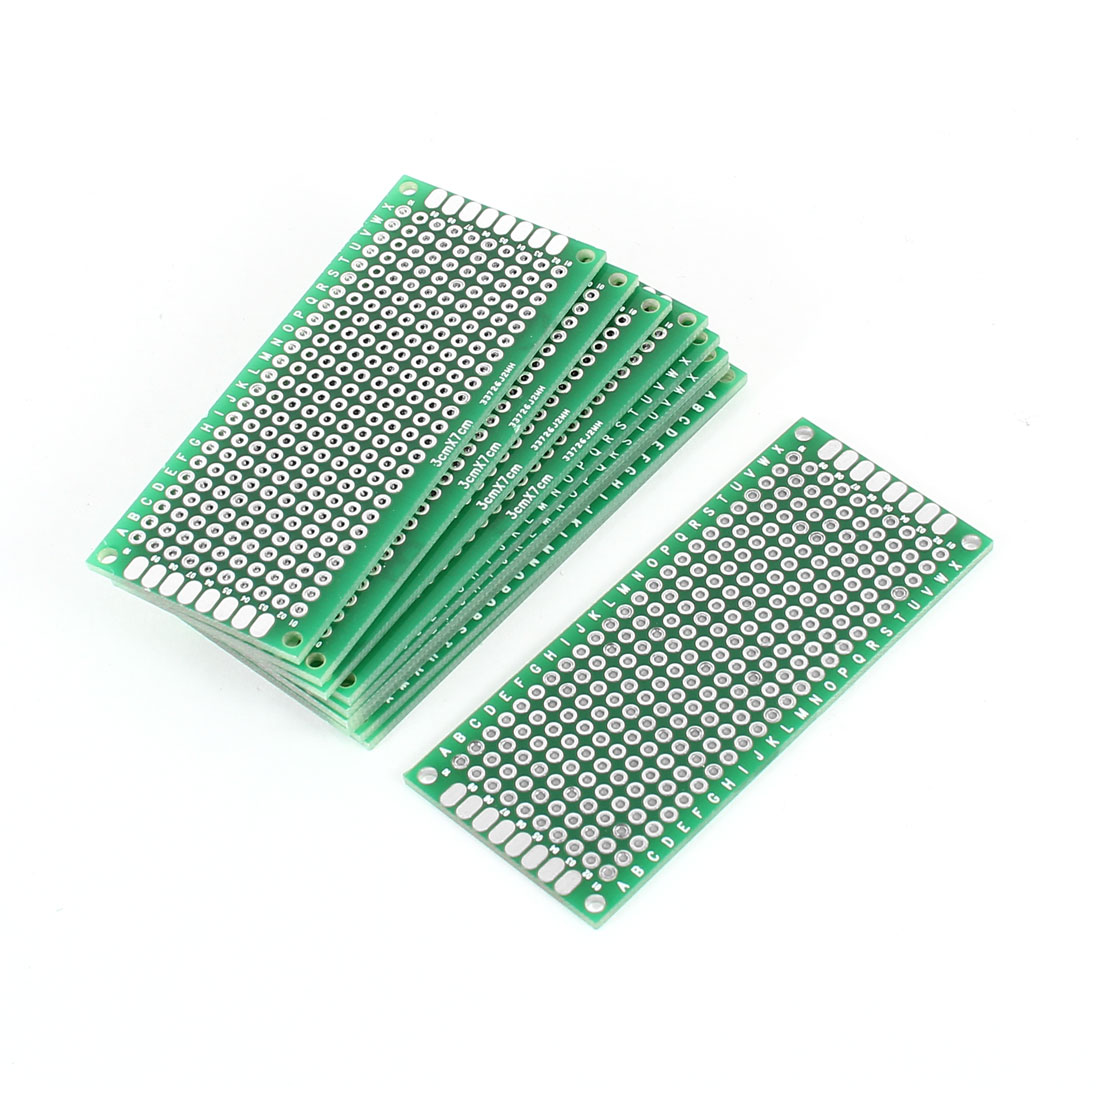 10 PCS 3cm x 7cm Double Sides Prototype Paper Tinnted DIY Universal PCB Print Circuit Board